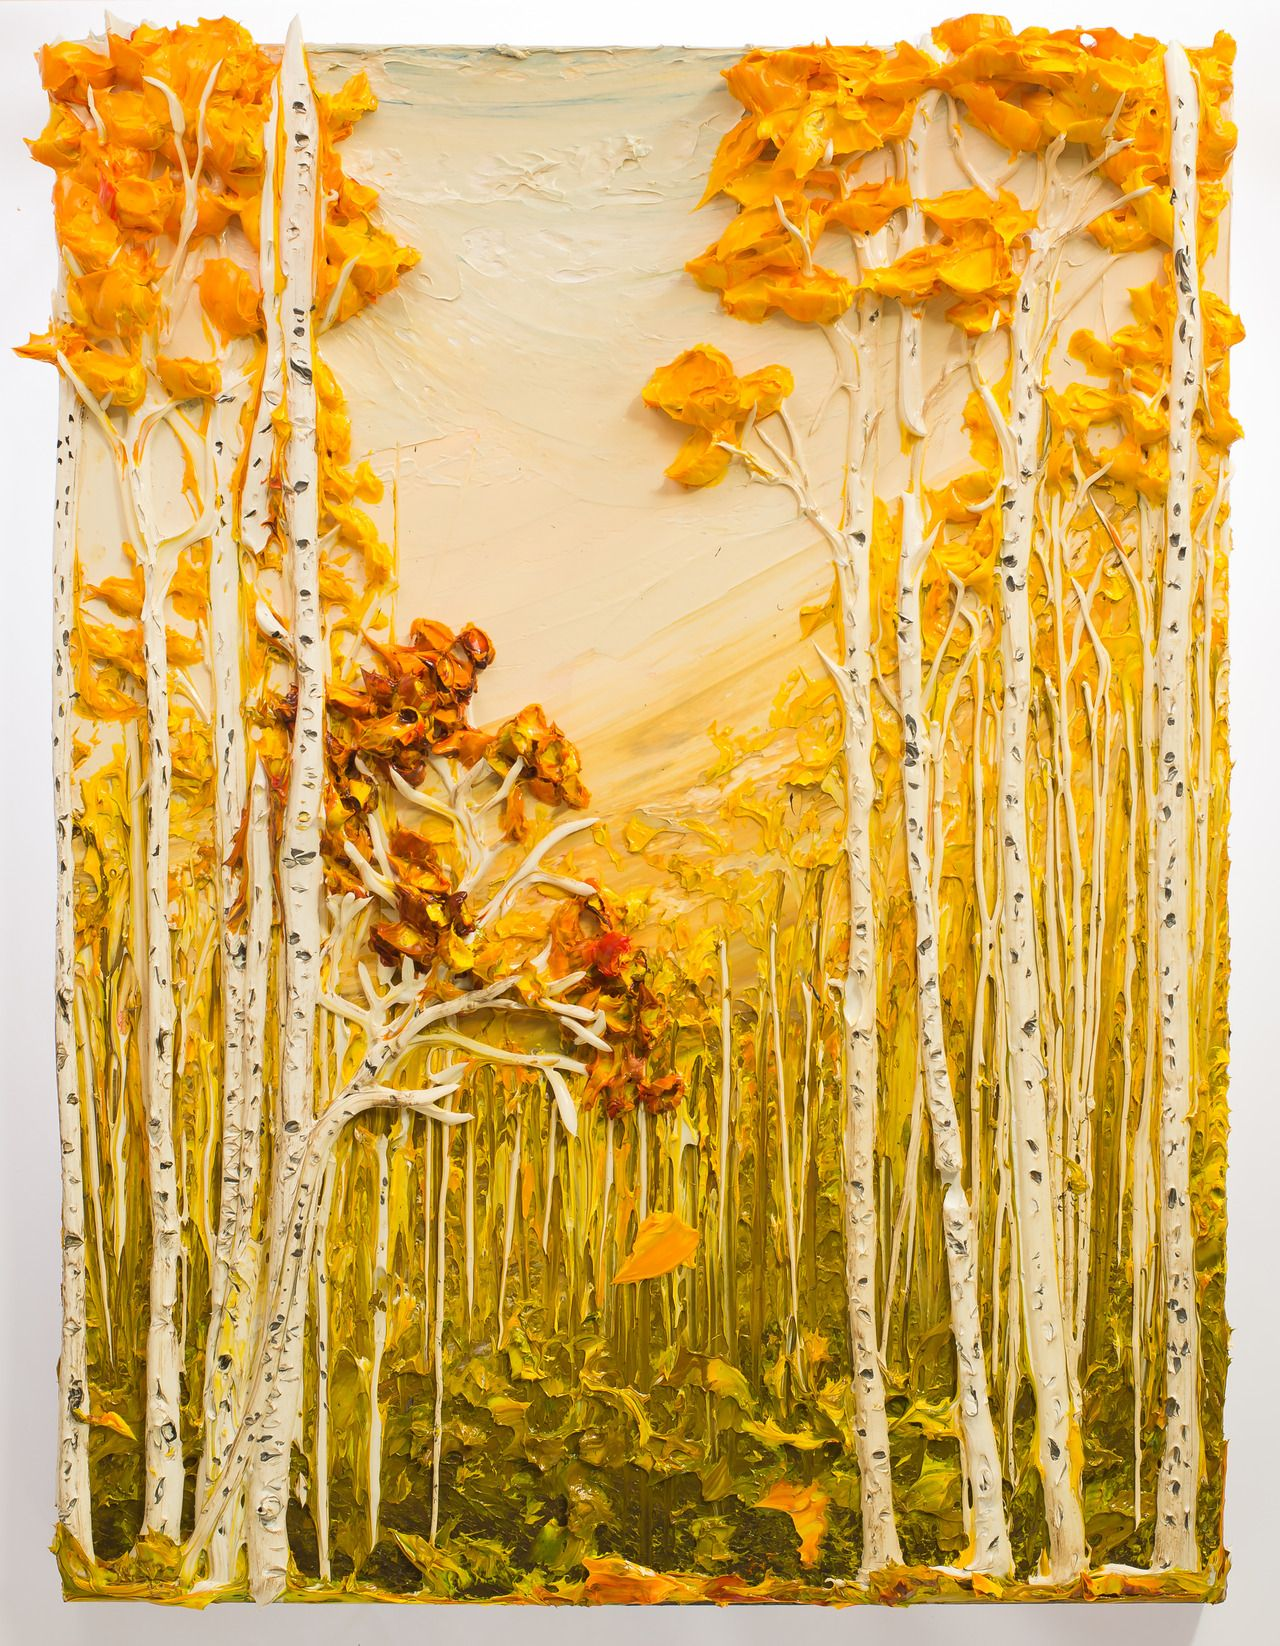 http://sculpted-paint.tumblr.com/post/41882625182/yellow-trees-24x24-inches-justin-gaffrey